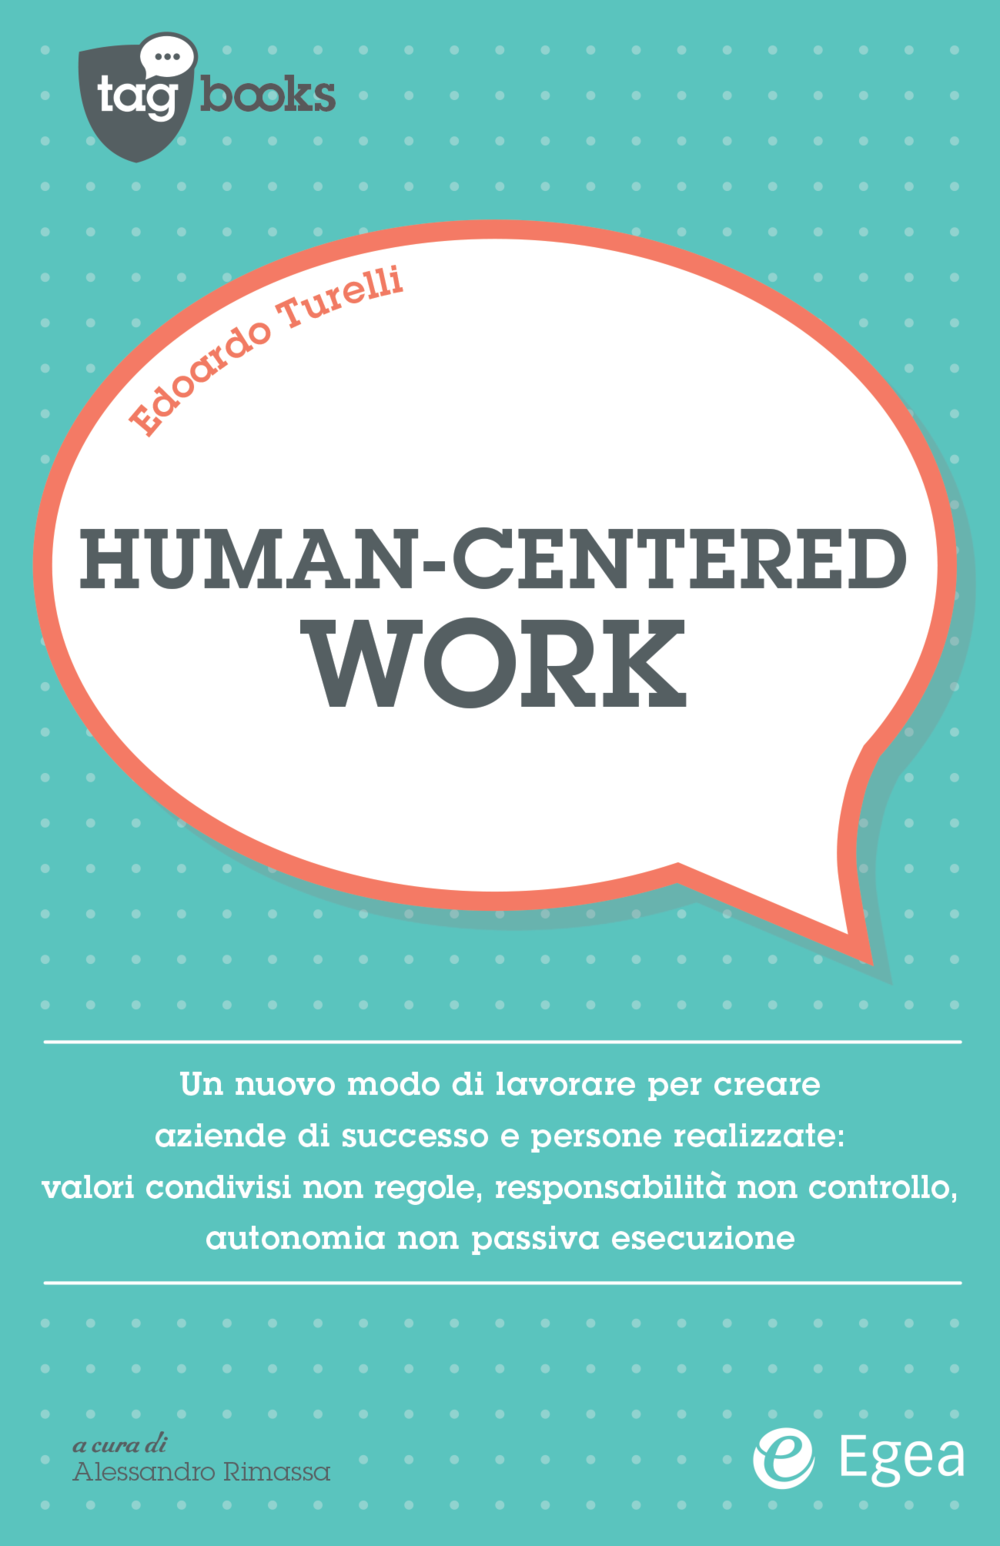 Human-Centered Work - Cover Copertina.png